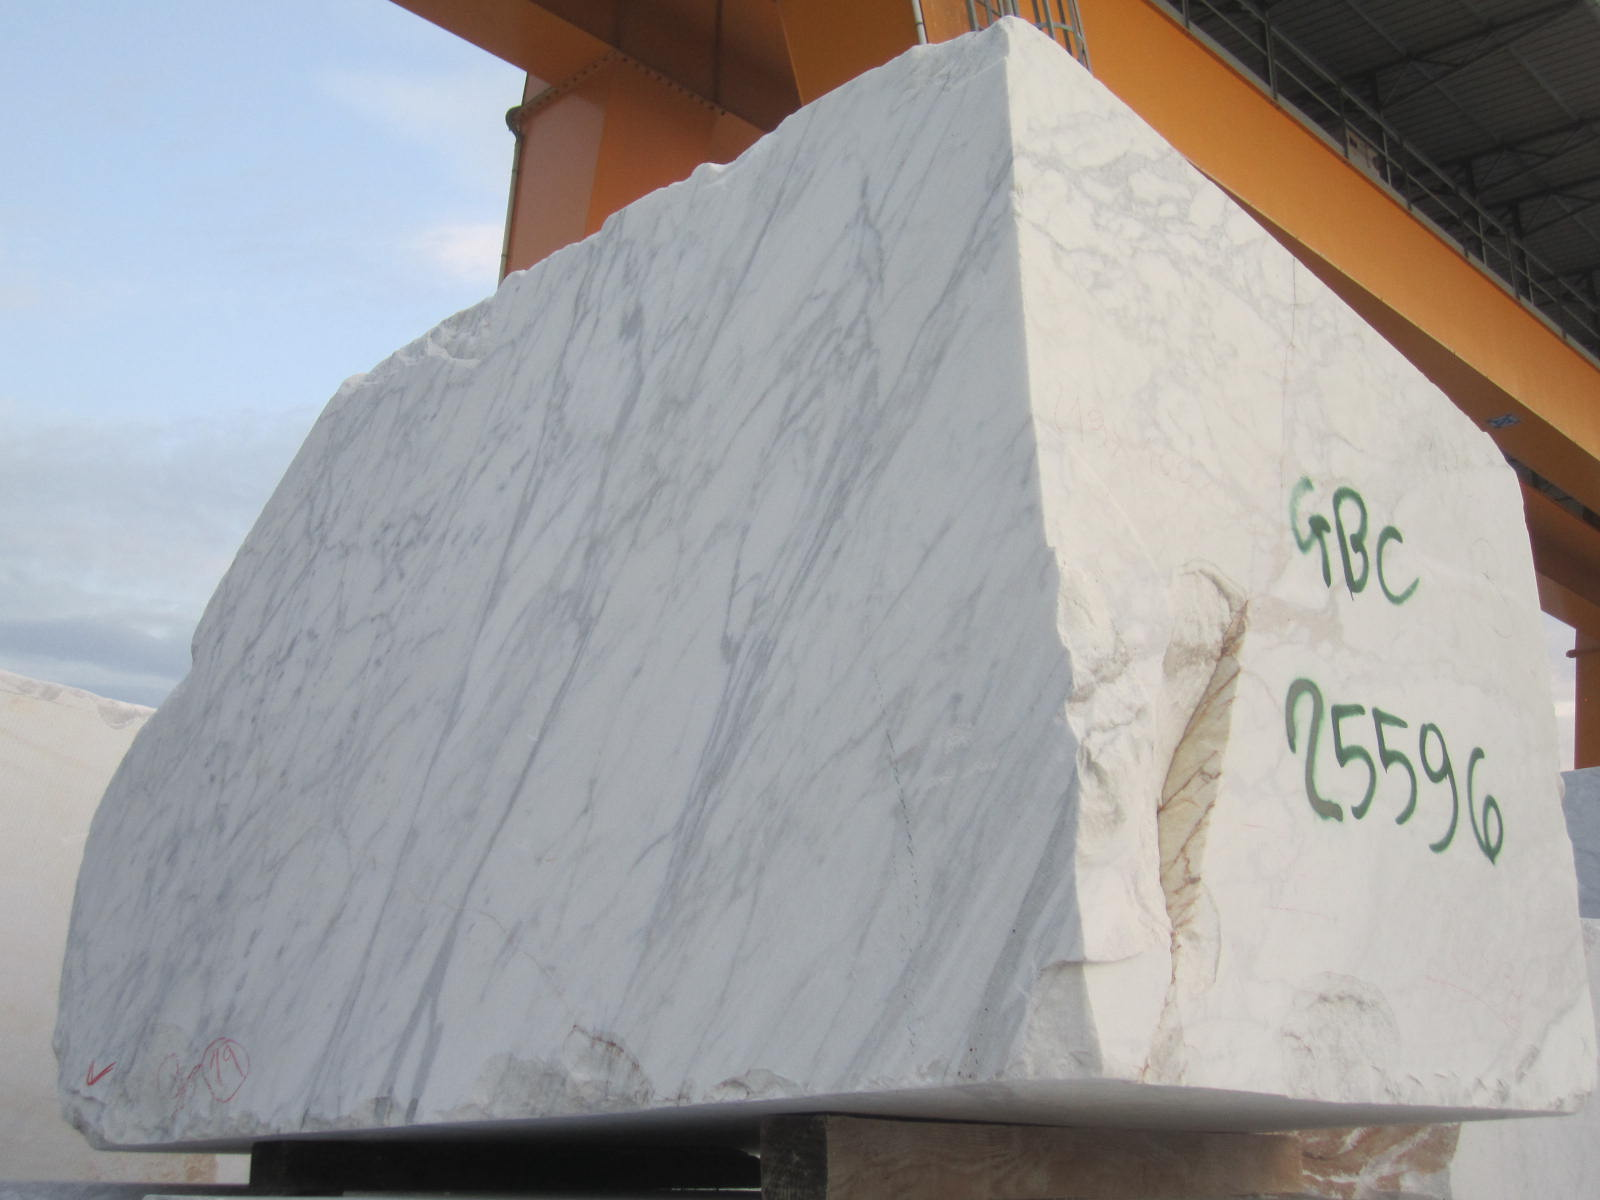 Carrara Bianco Marble Block Selection And Rejection